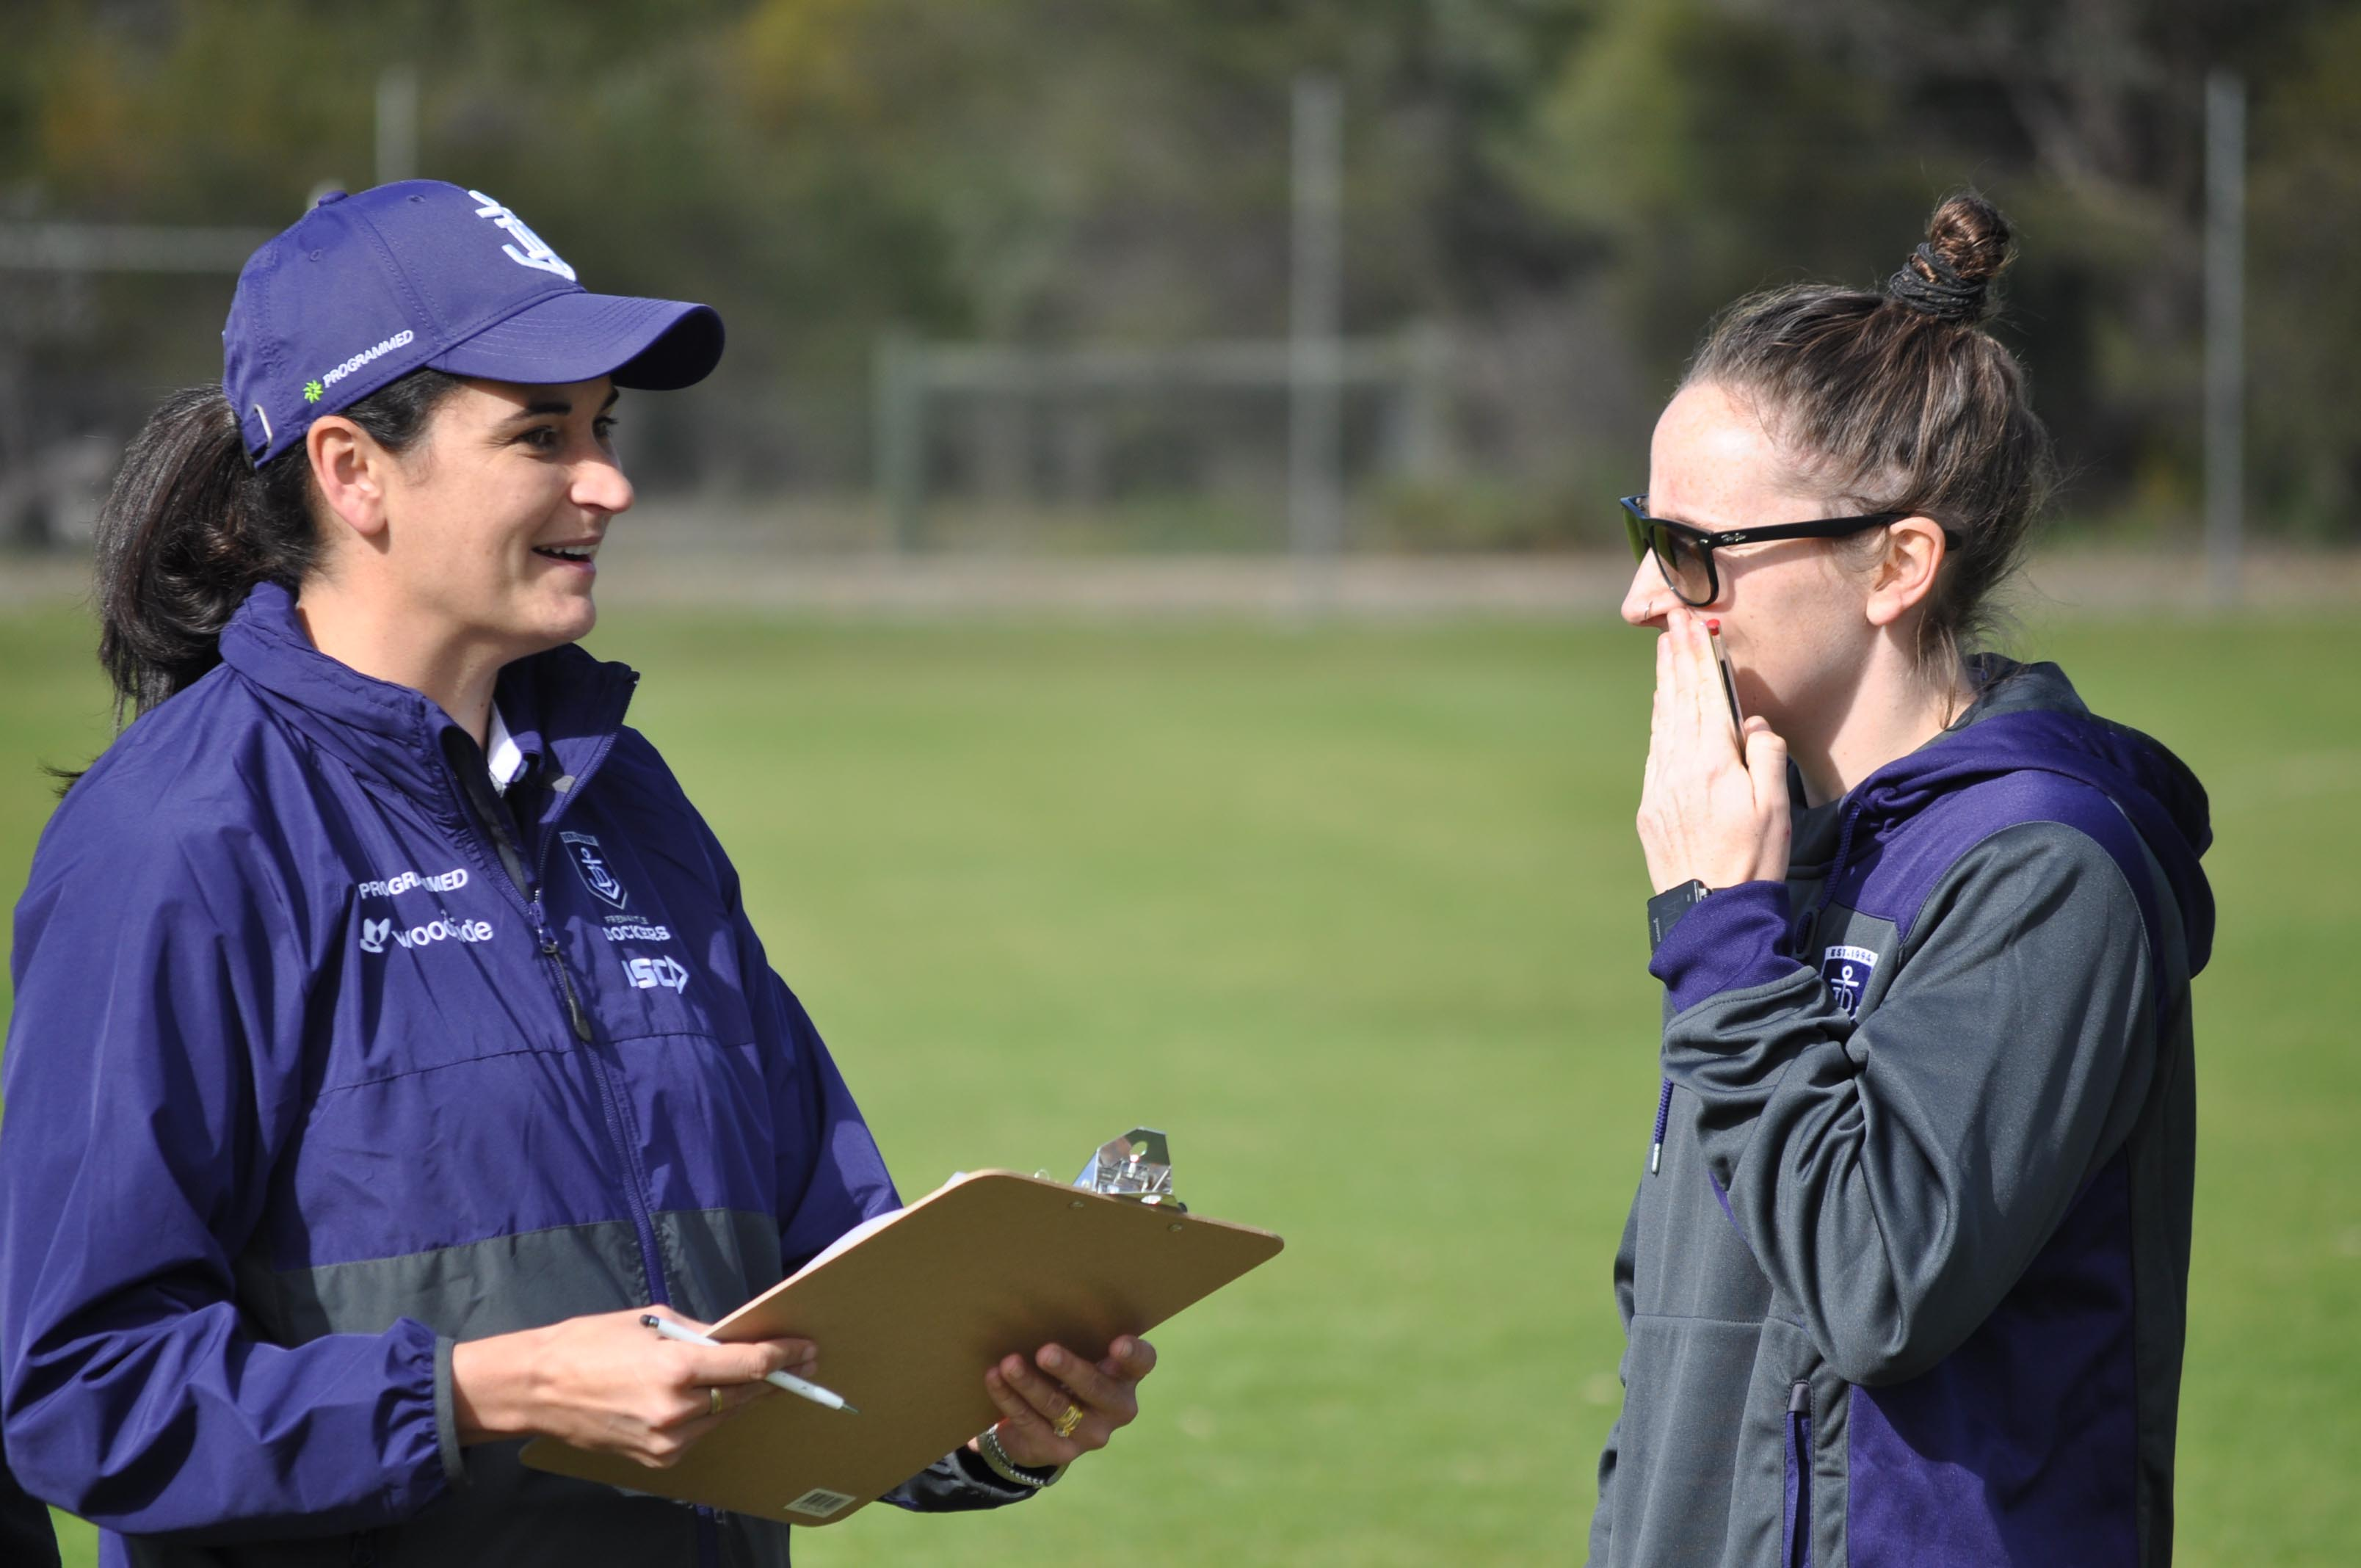 Fremantle Dockers women's coach Michelle Cowan talks with marquee signing Kara Donnellan.